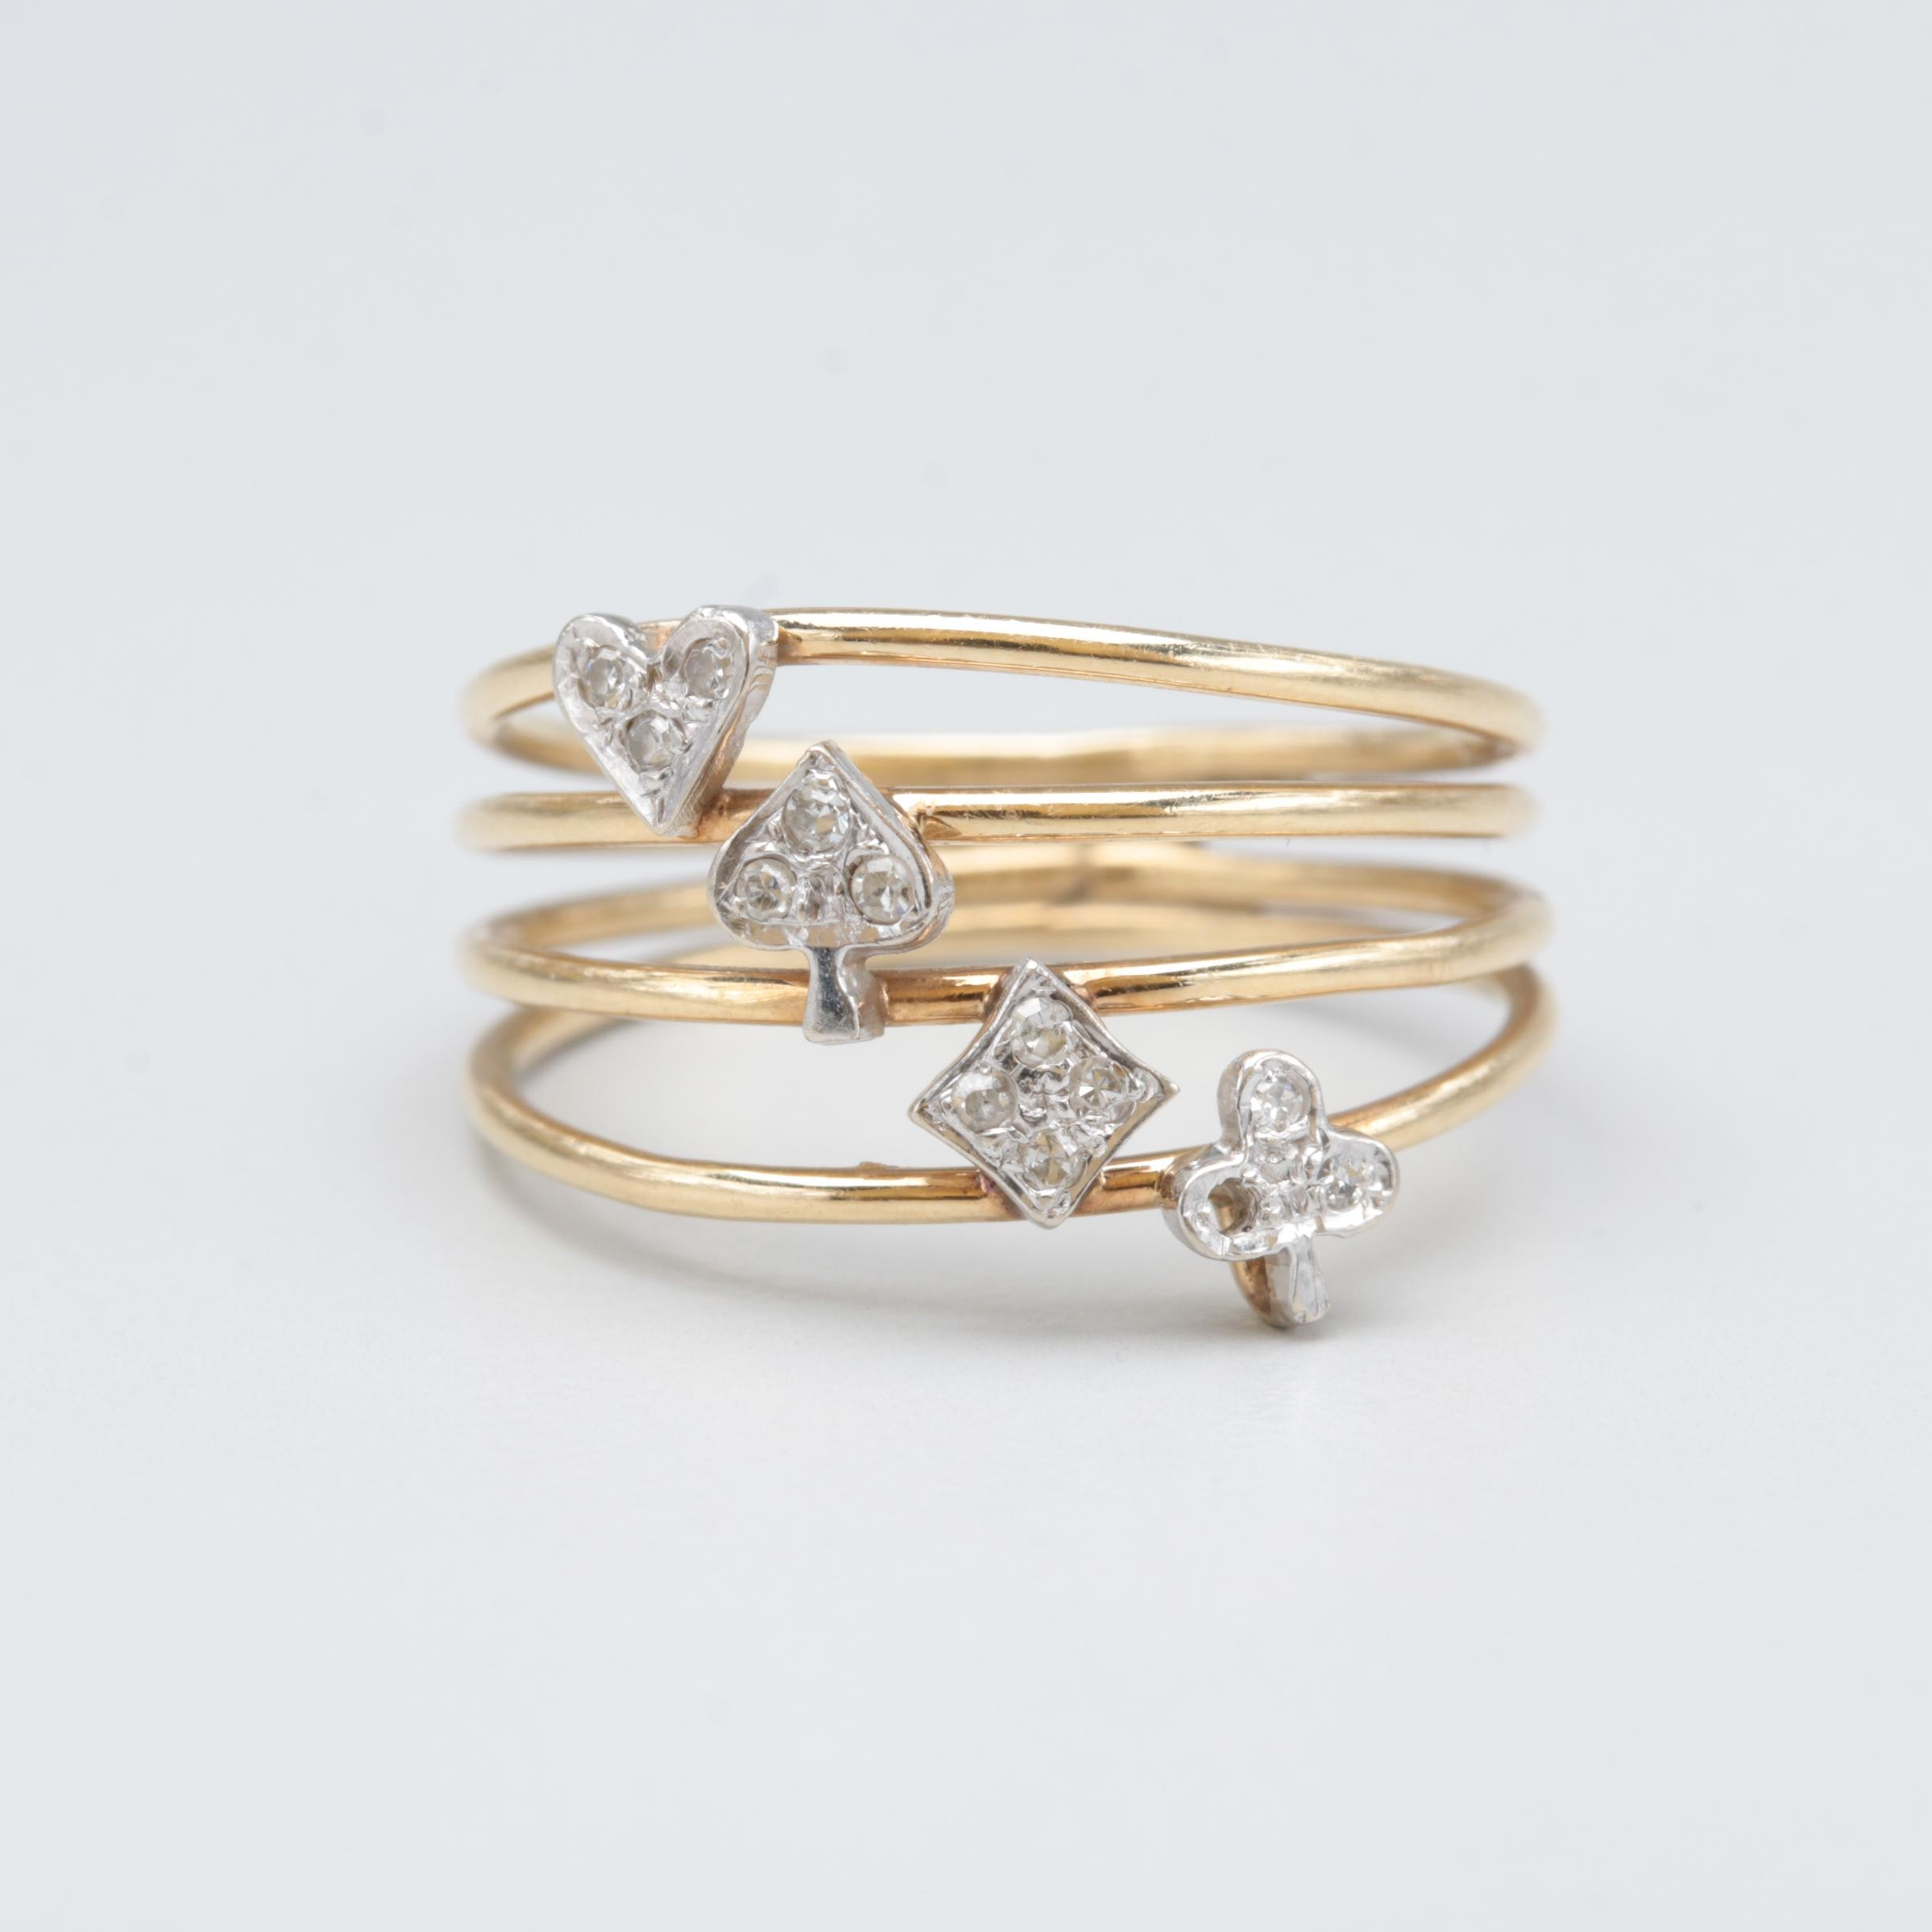 14K Yellow Gold Diamond Ring with Card Suit Motif